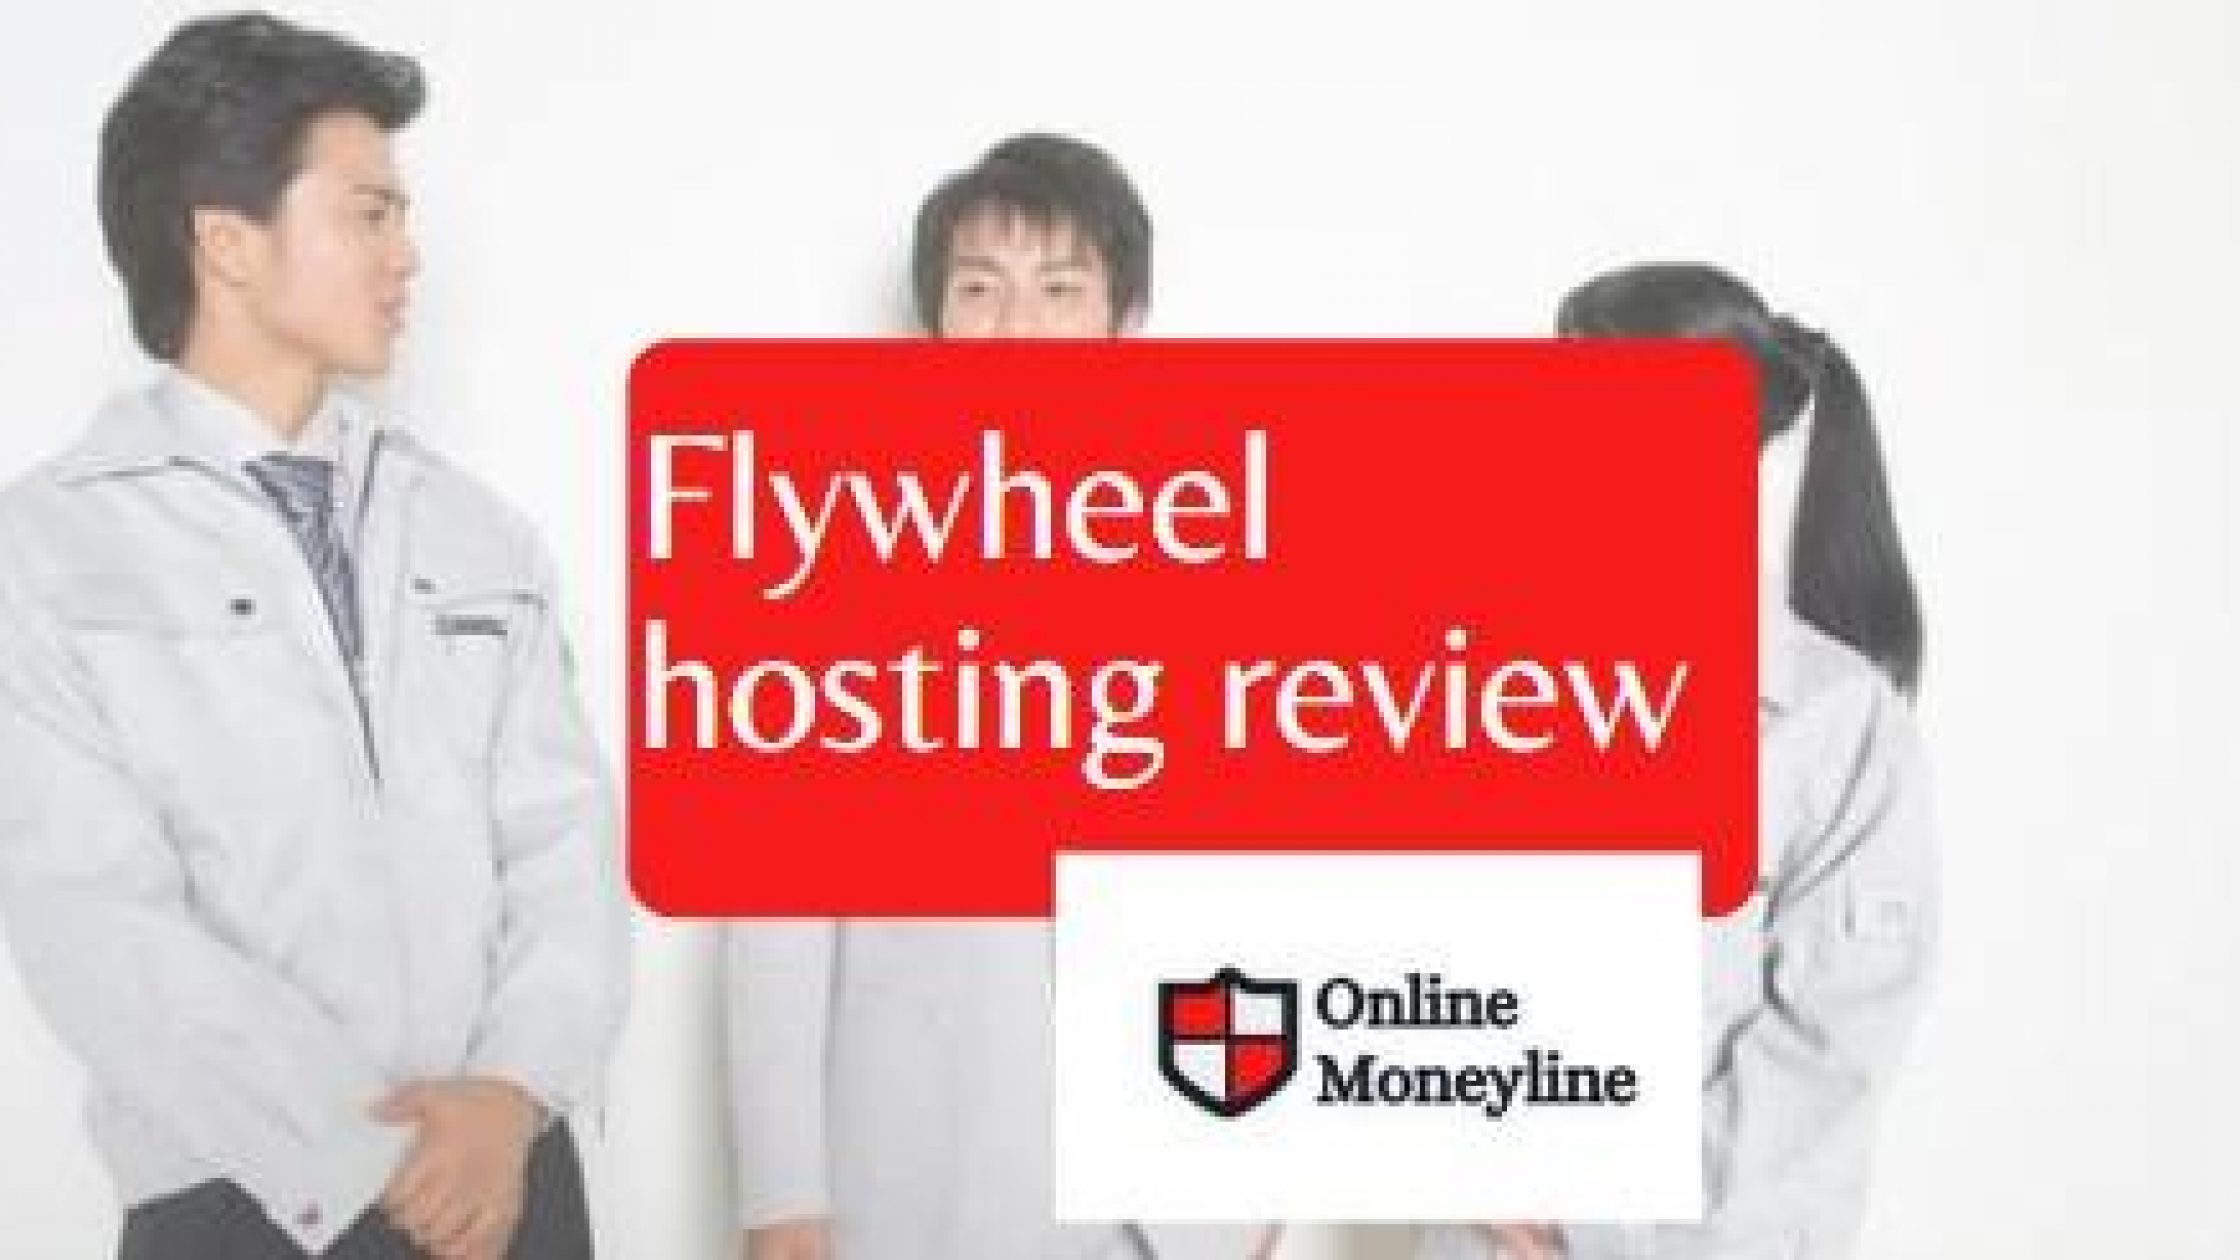 FlyWheel Hosting Review   All You Need To Know